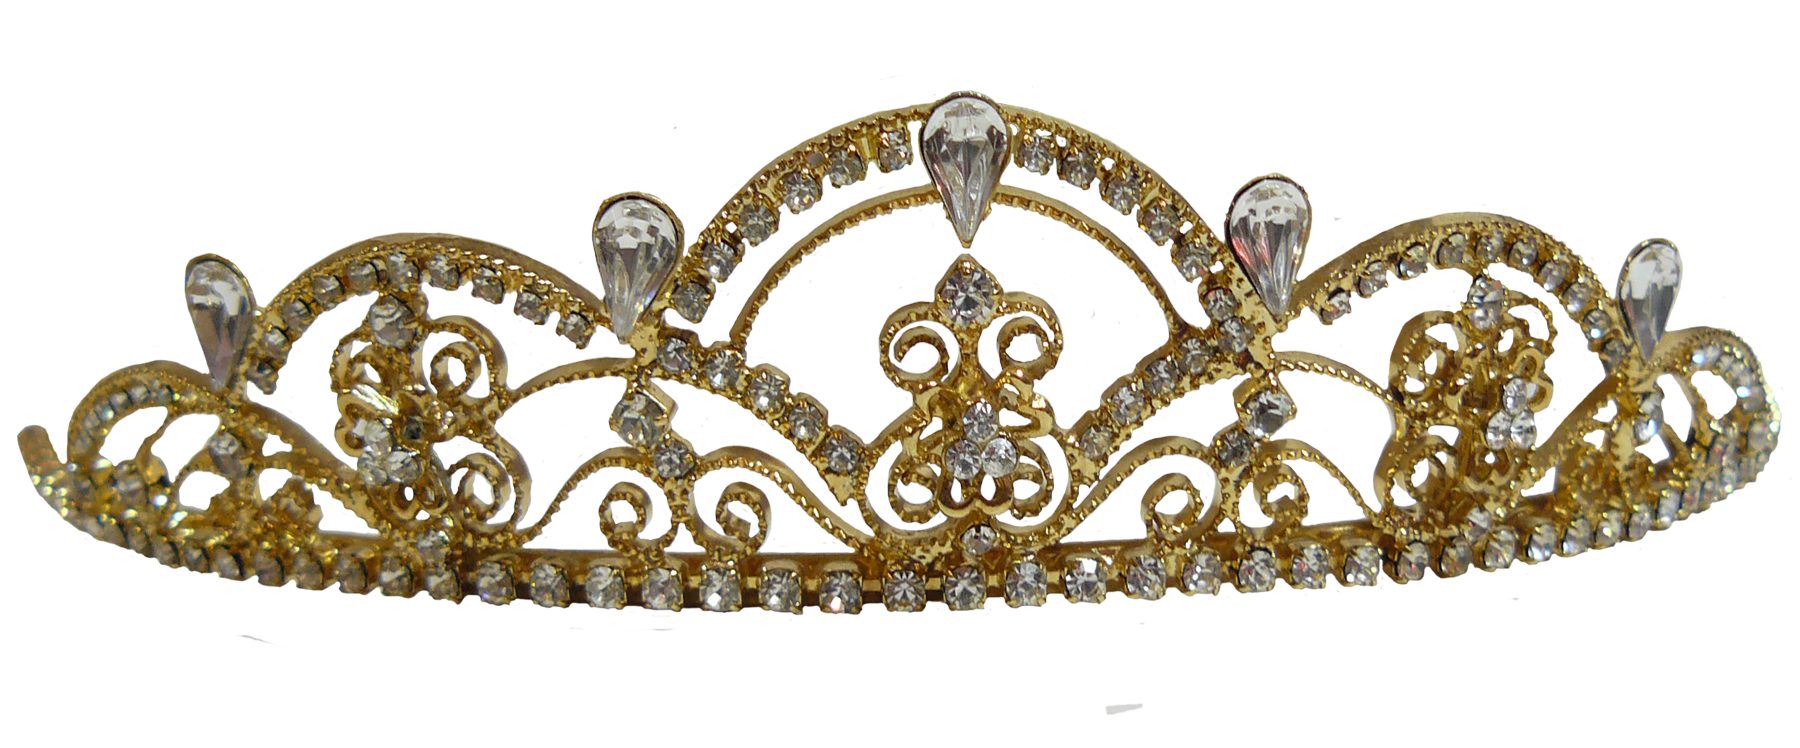 gold crowns png image transparent backgound picture free clipart images no copyright copyright free clipart images save the date